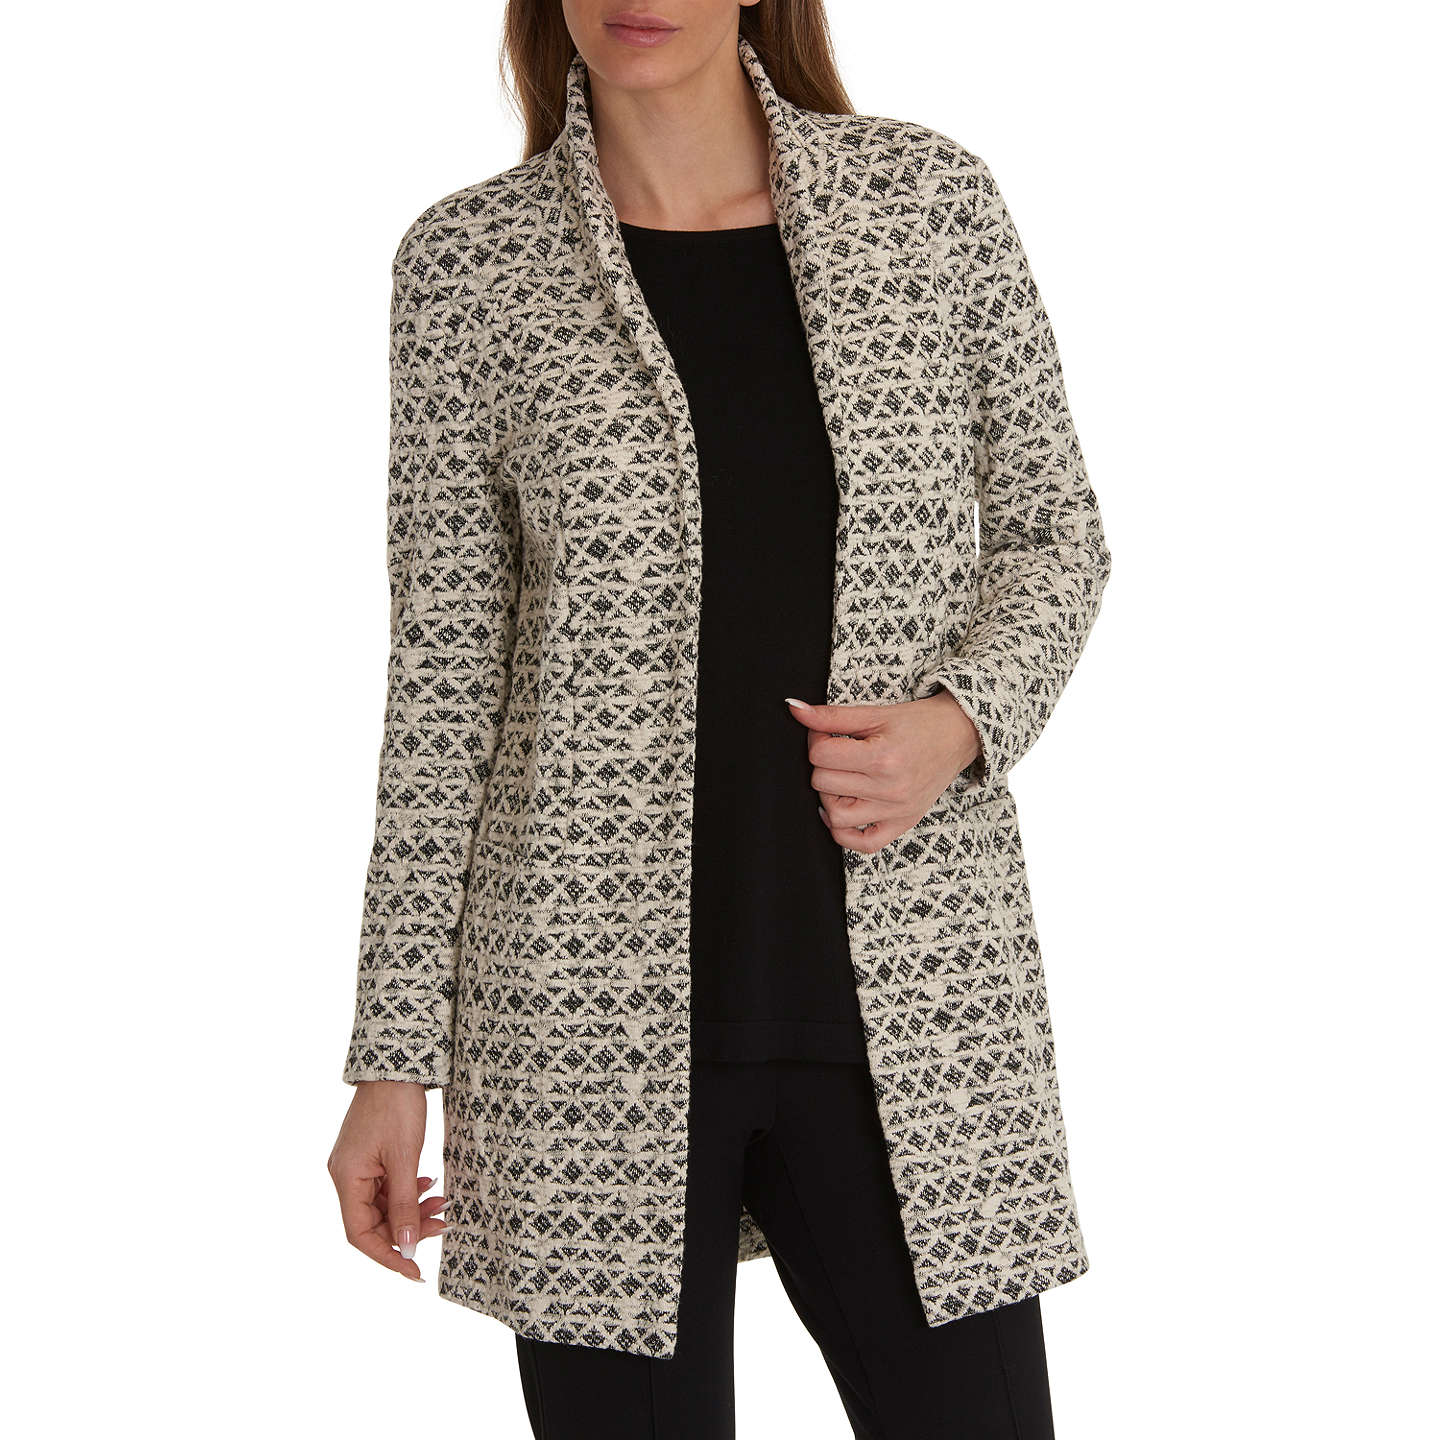 BuyBetty Barclay Textured Jacket, Black/Cream, 10 Online at johnlewis.com  ...